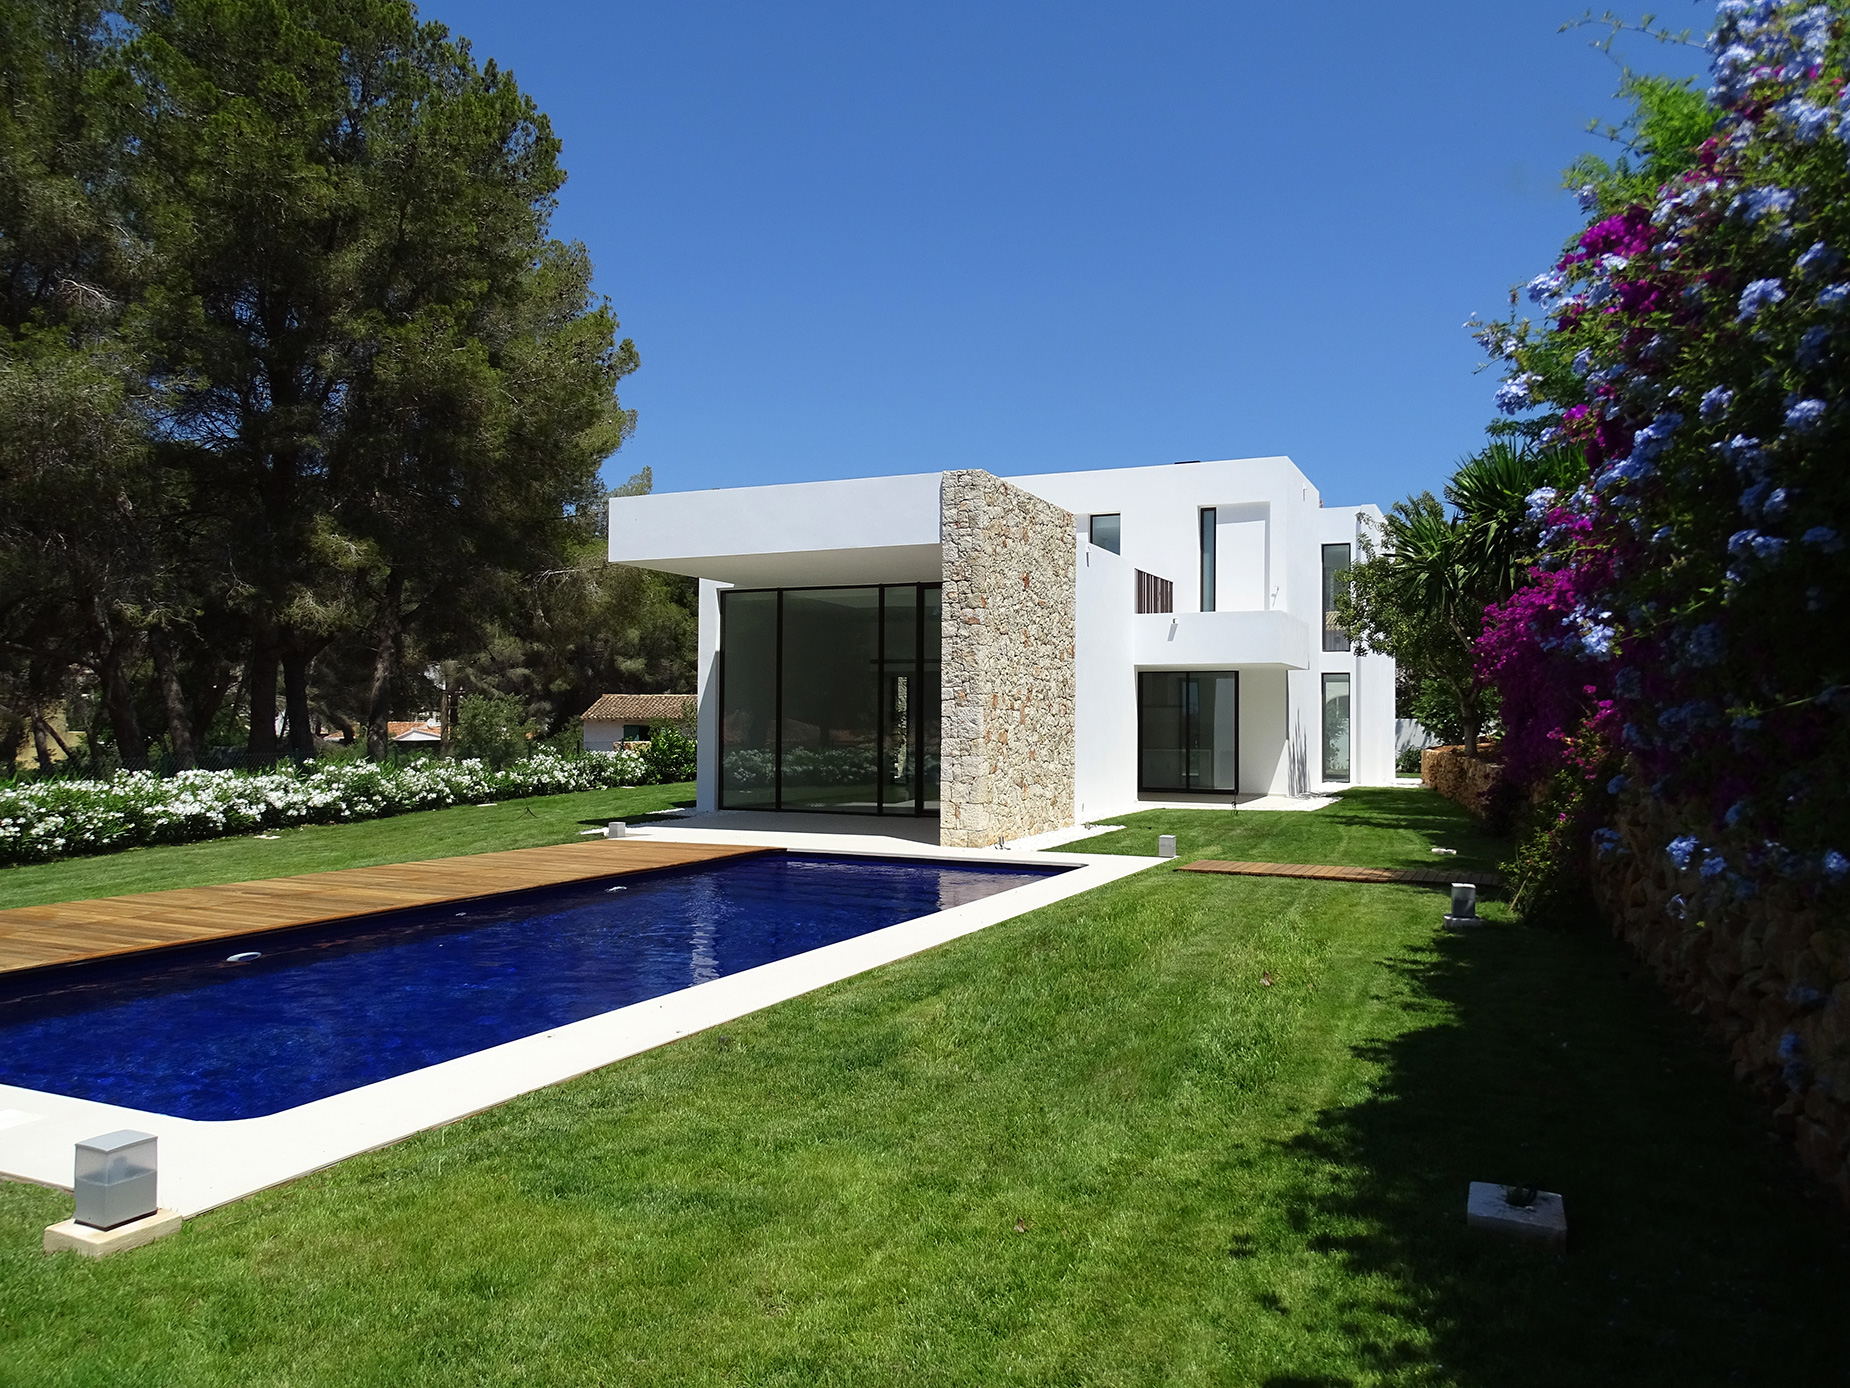 34252 The villa from the owner, El Porte, Moraira (Spain)